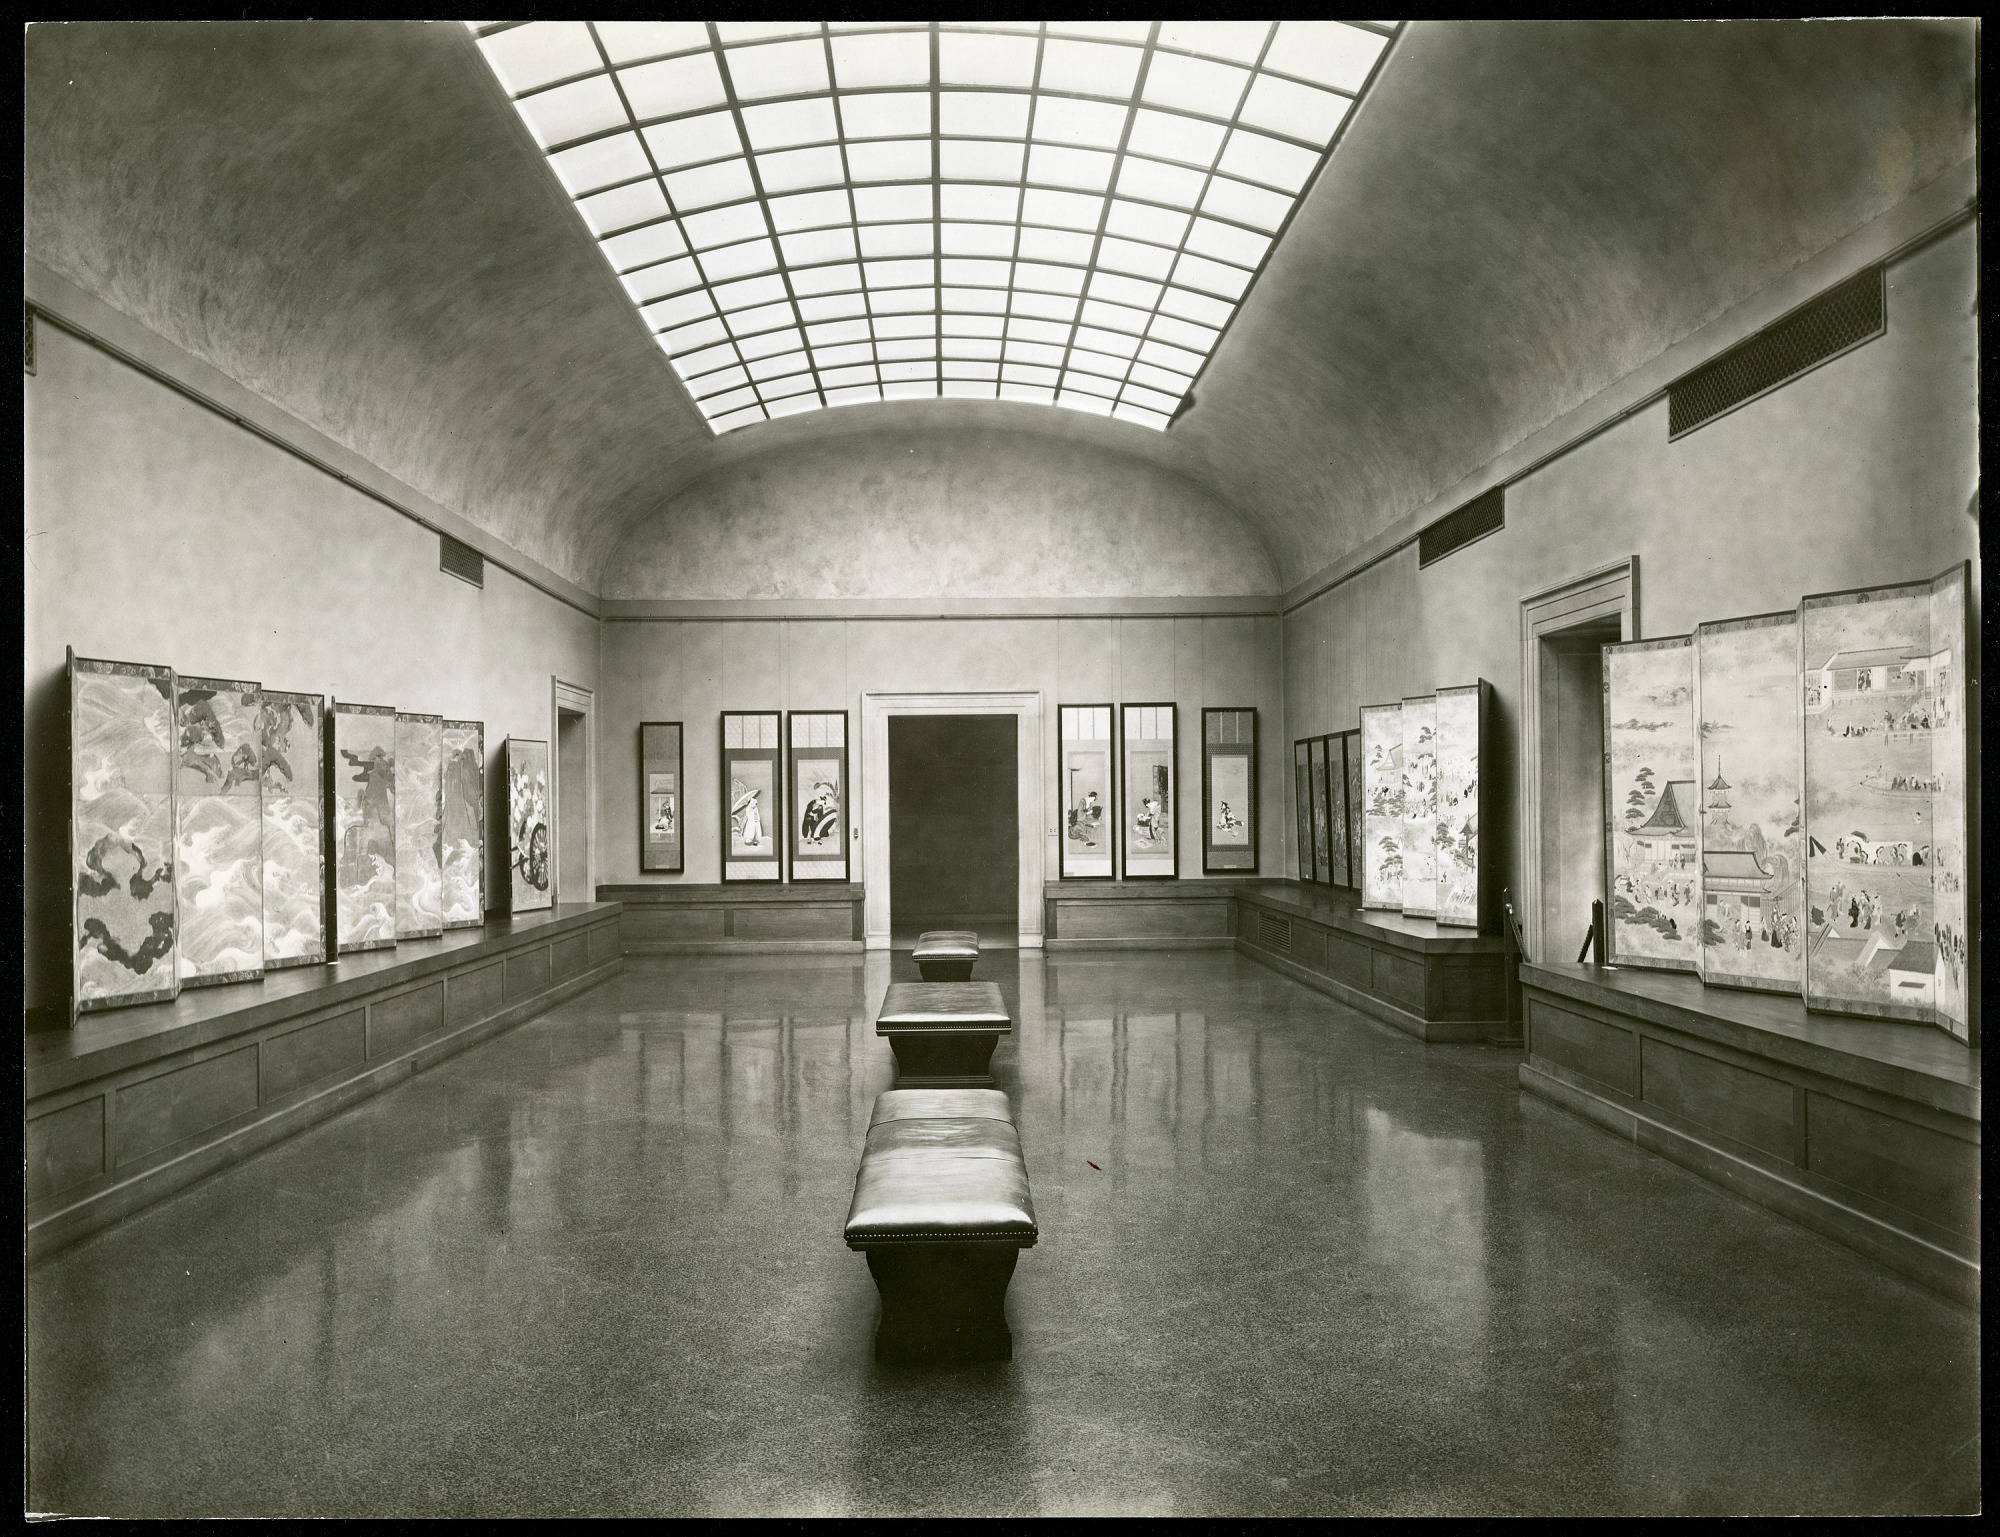 Preview of Gallery V Looking South in the Freer Gallery of Art